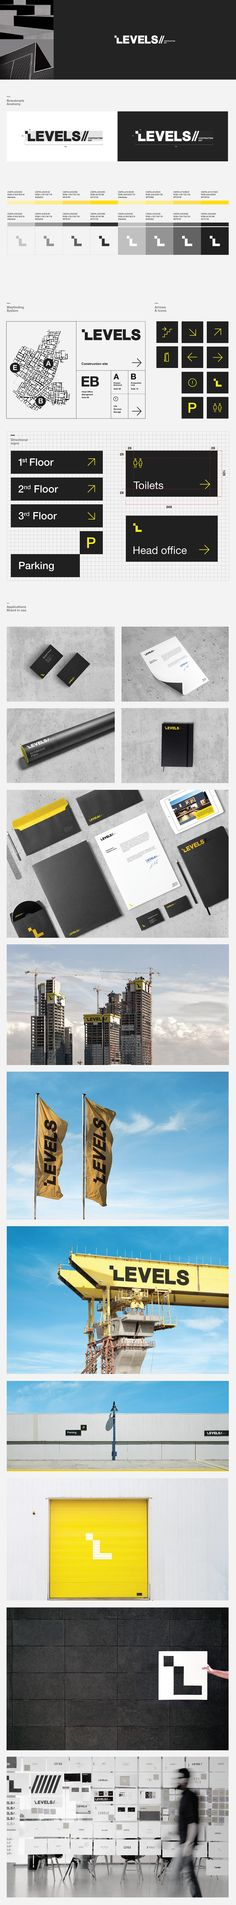 Levels// Contracting est. on Branding Served